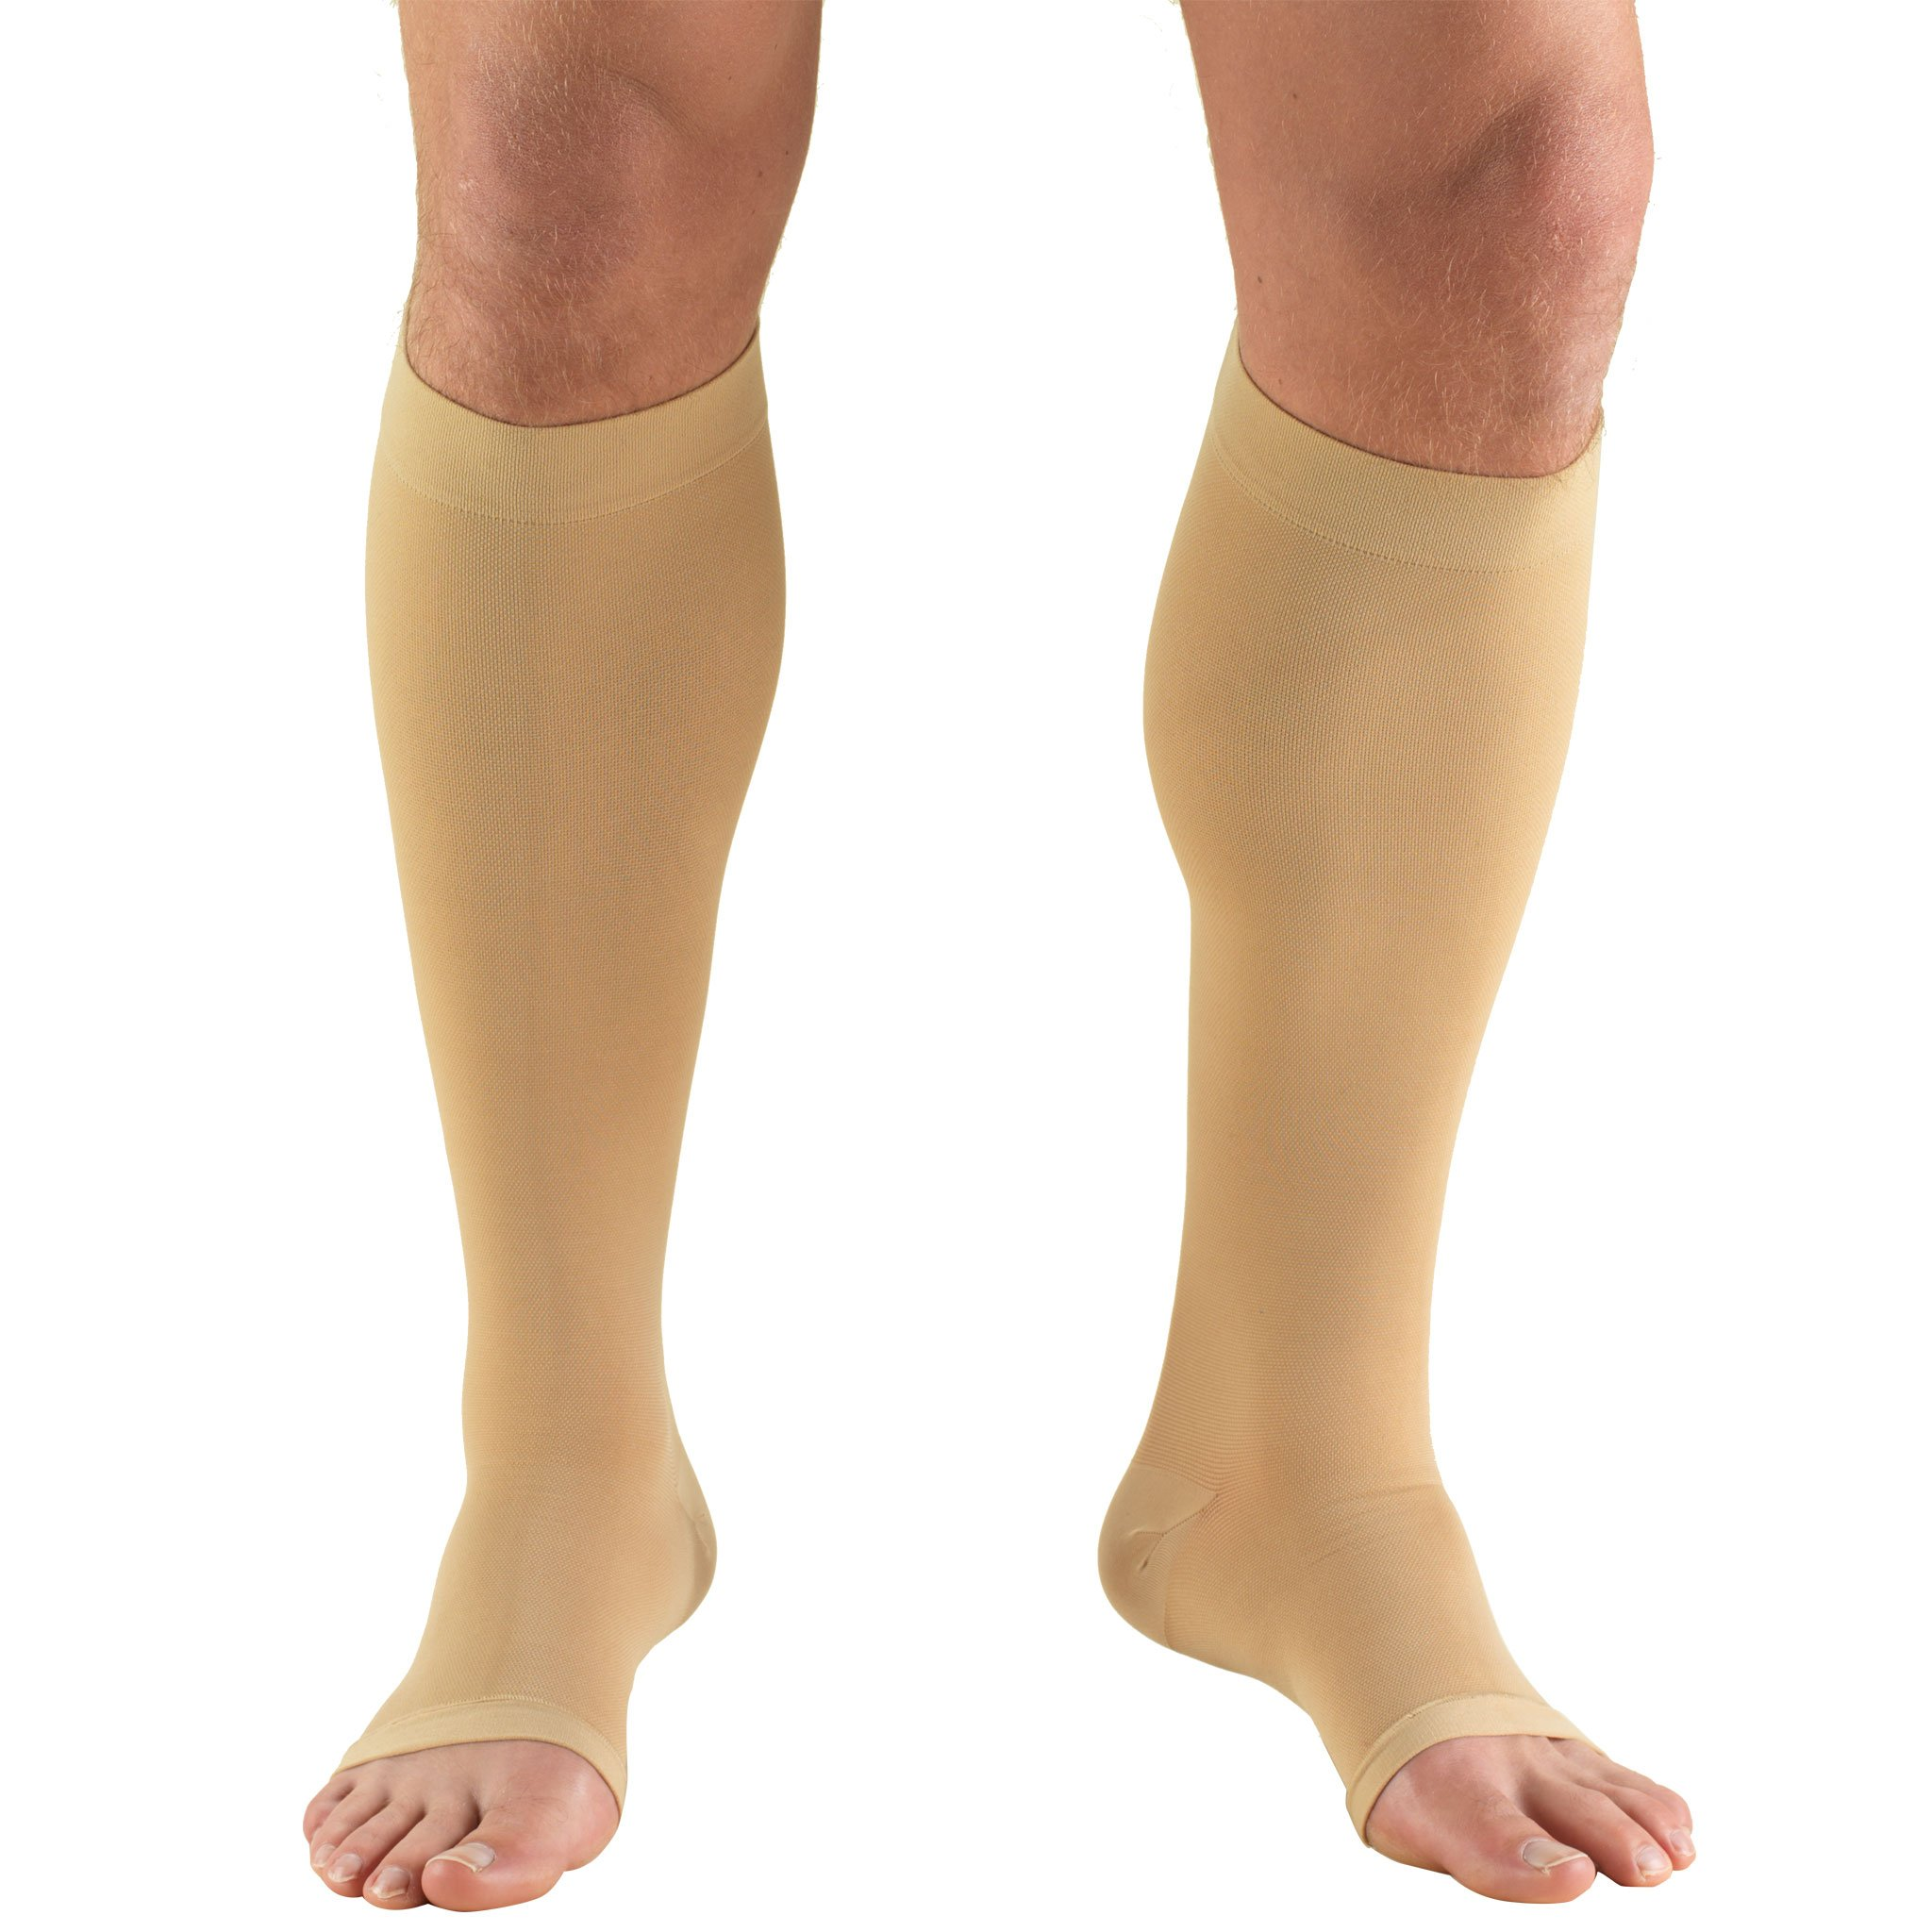 Truform 20-30 mmHg Compression Stocking for Men and Women, Knee High Length, Open Toe, Beige, Small